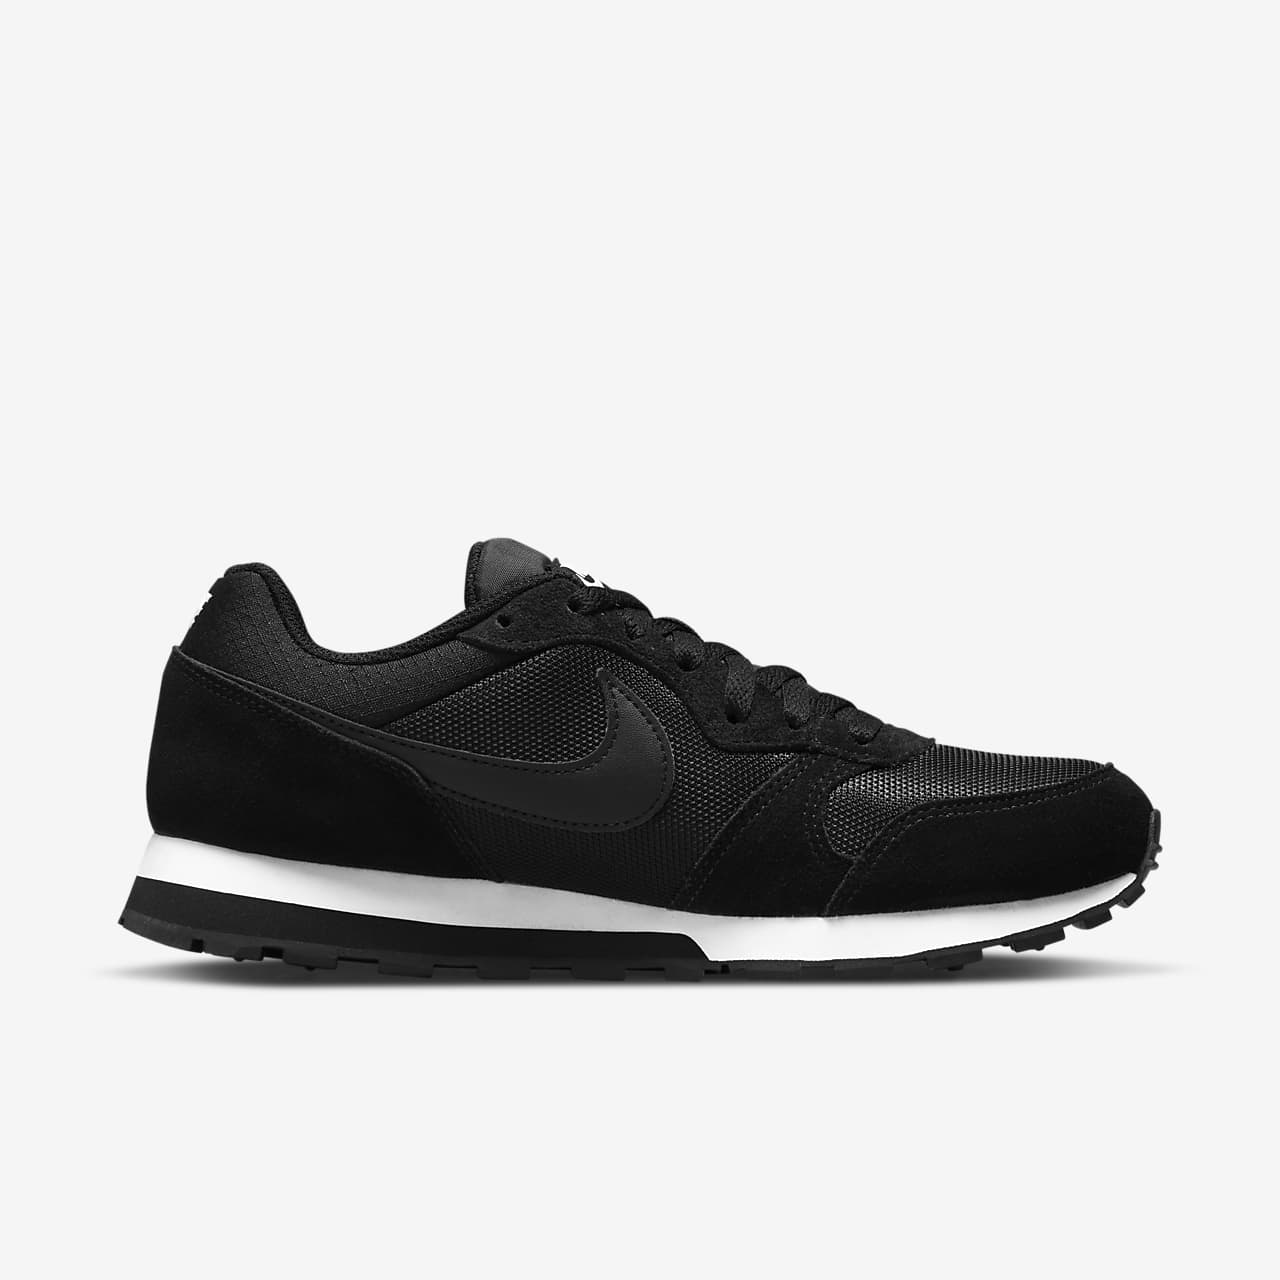 nike internationalist men's 8.5 nz